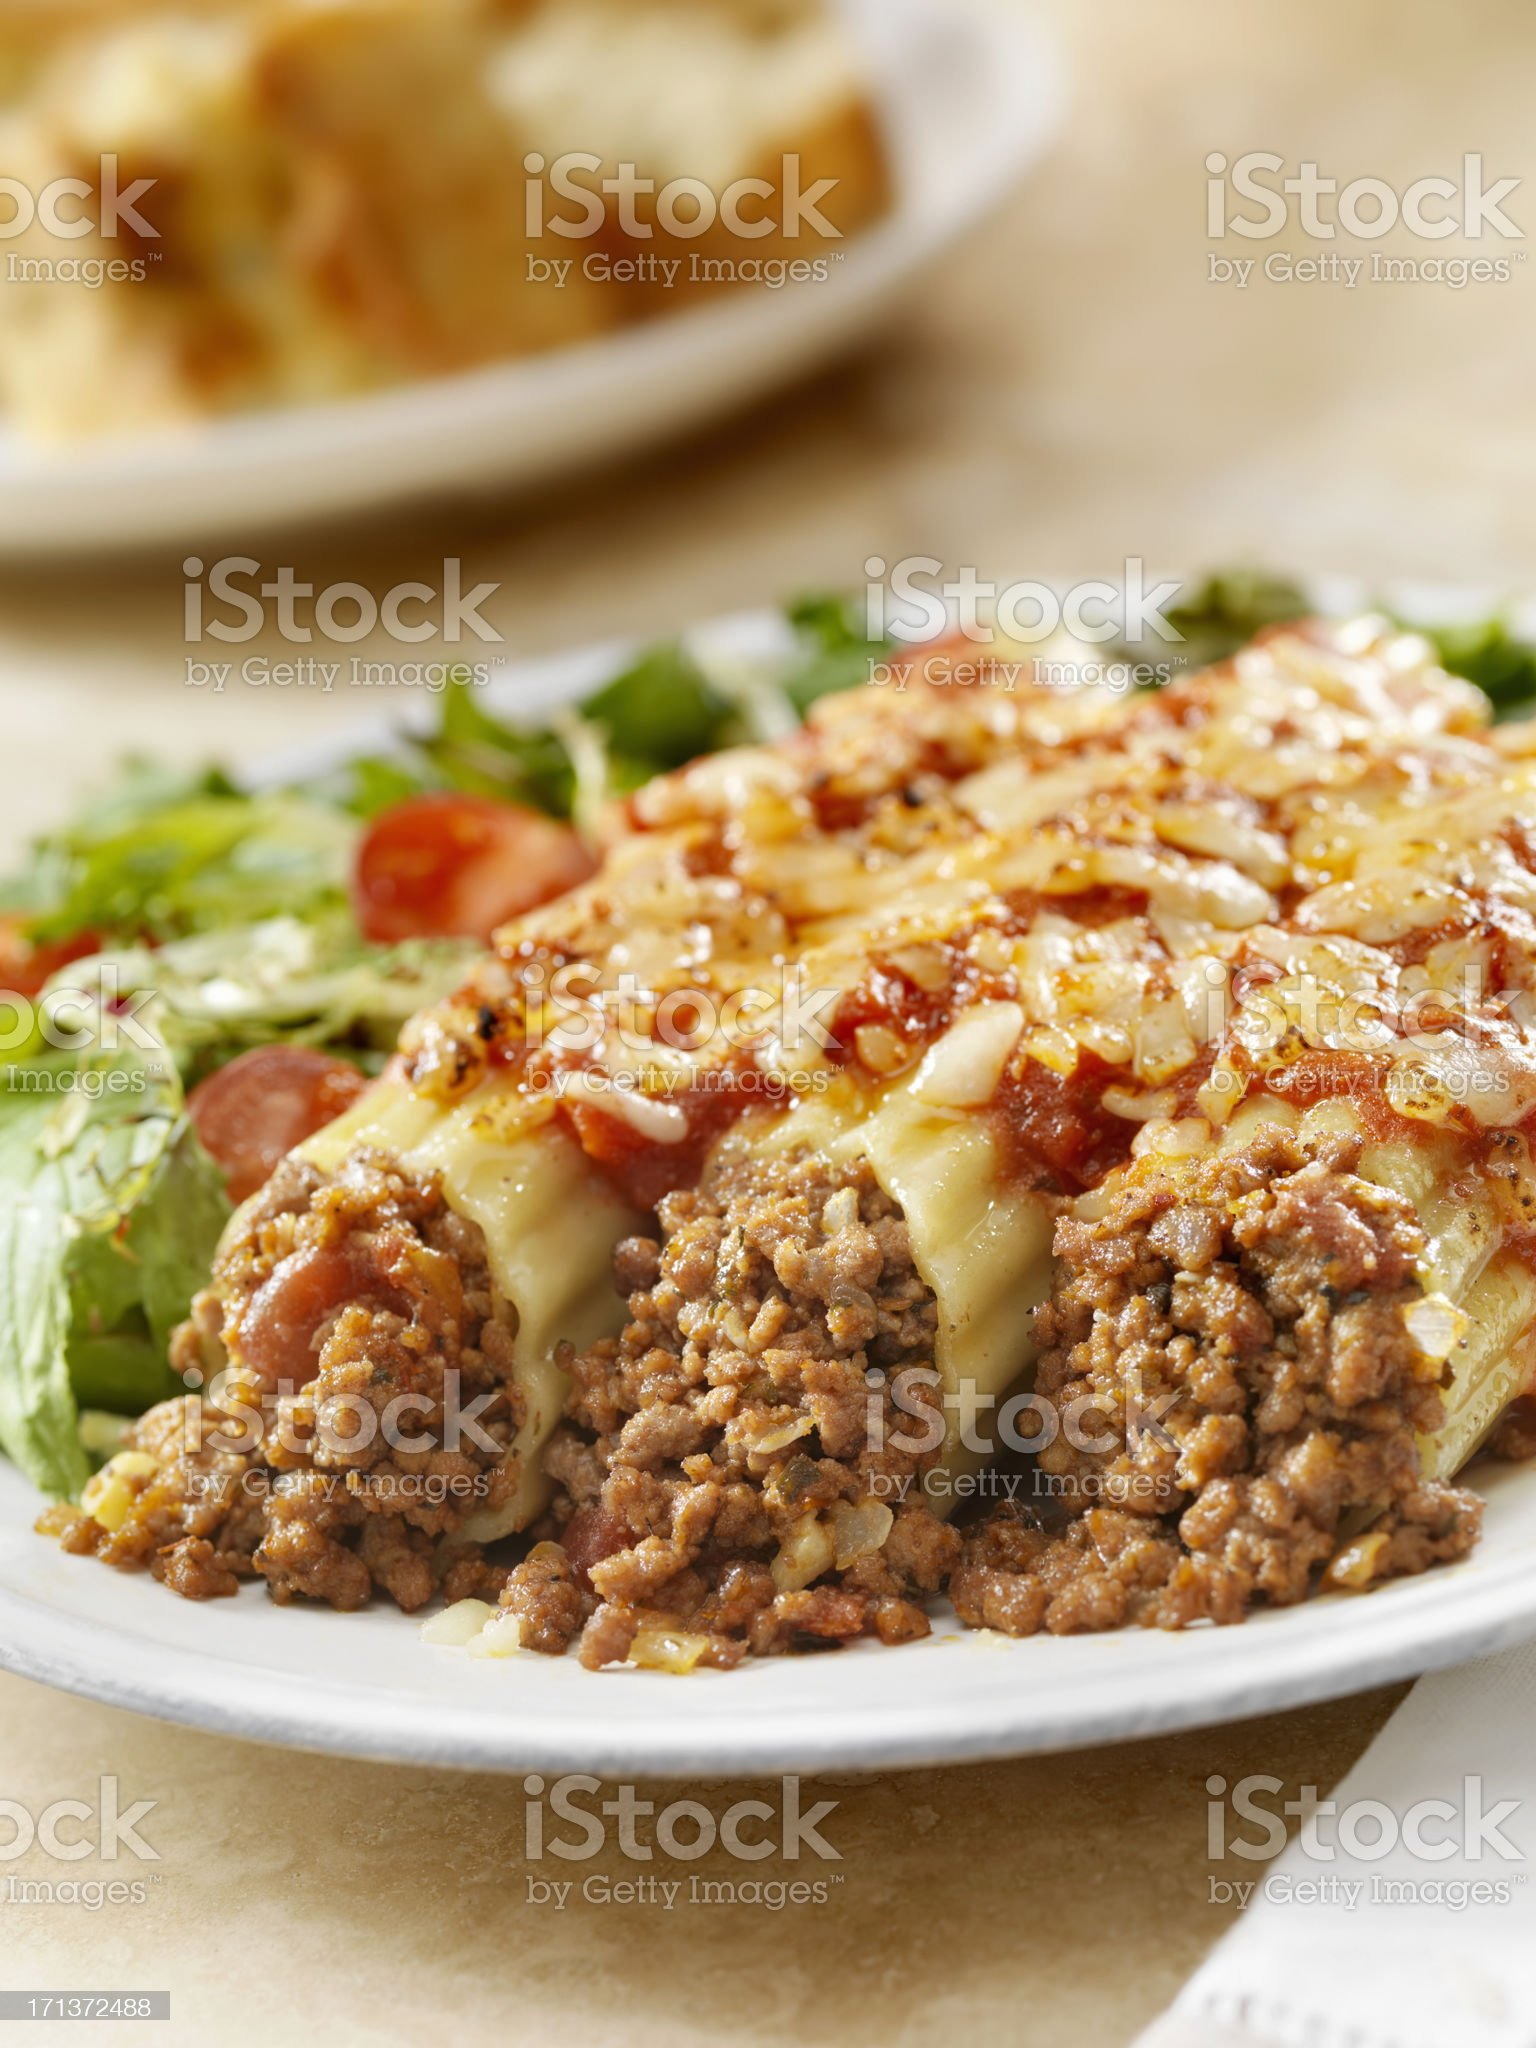 Stuffed Manicotti royalty-free stock photo